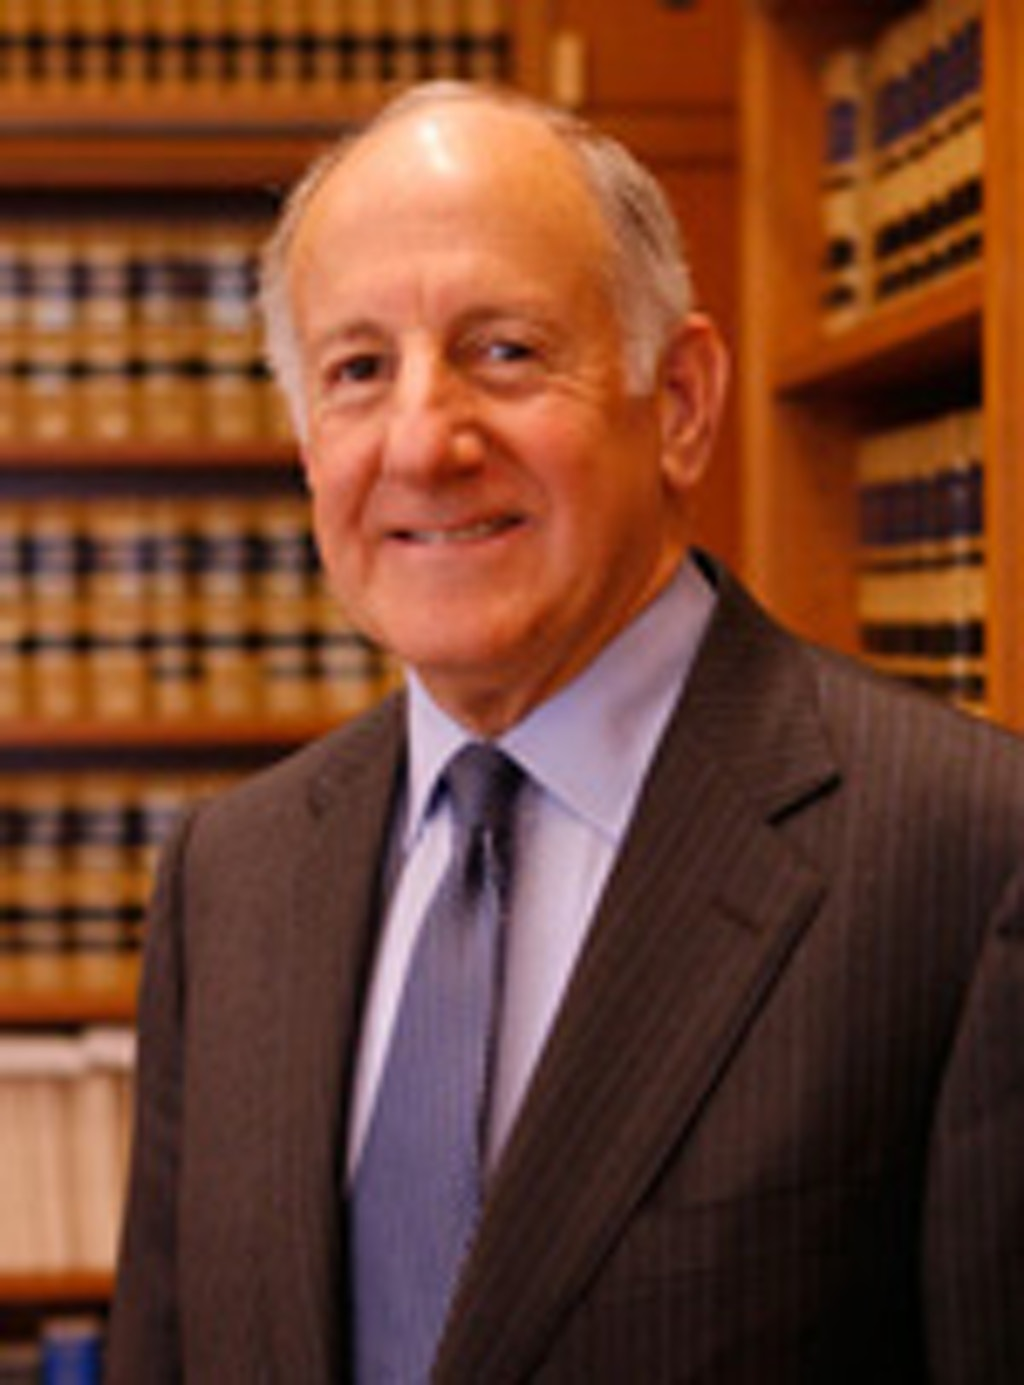 """NEW VOICES: California Chief Justice Calls Death Penalty """"Dysfunctional"""""""